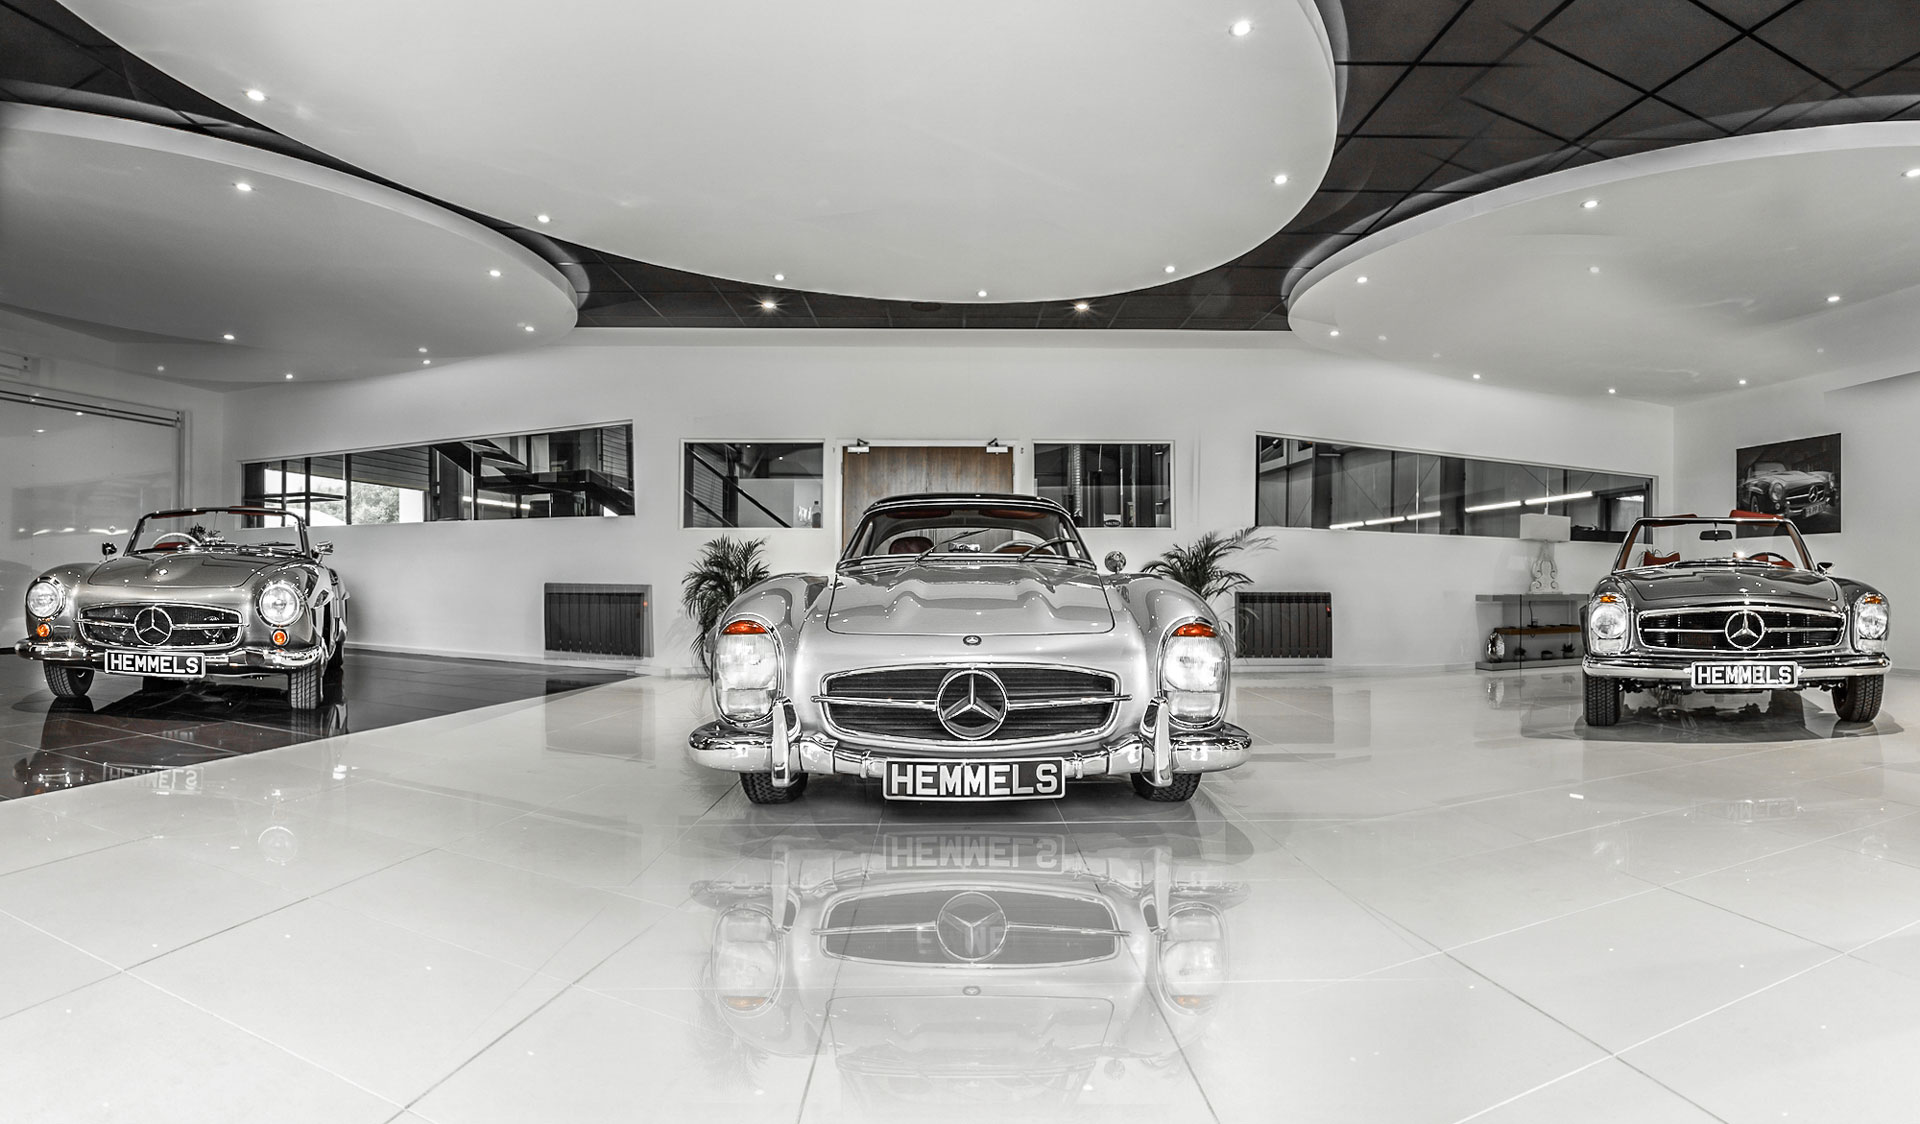 Classic Mercedes 300SL, 280SL and 190SL in the Hemmels showroom